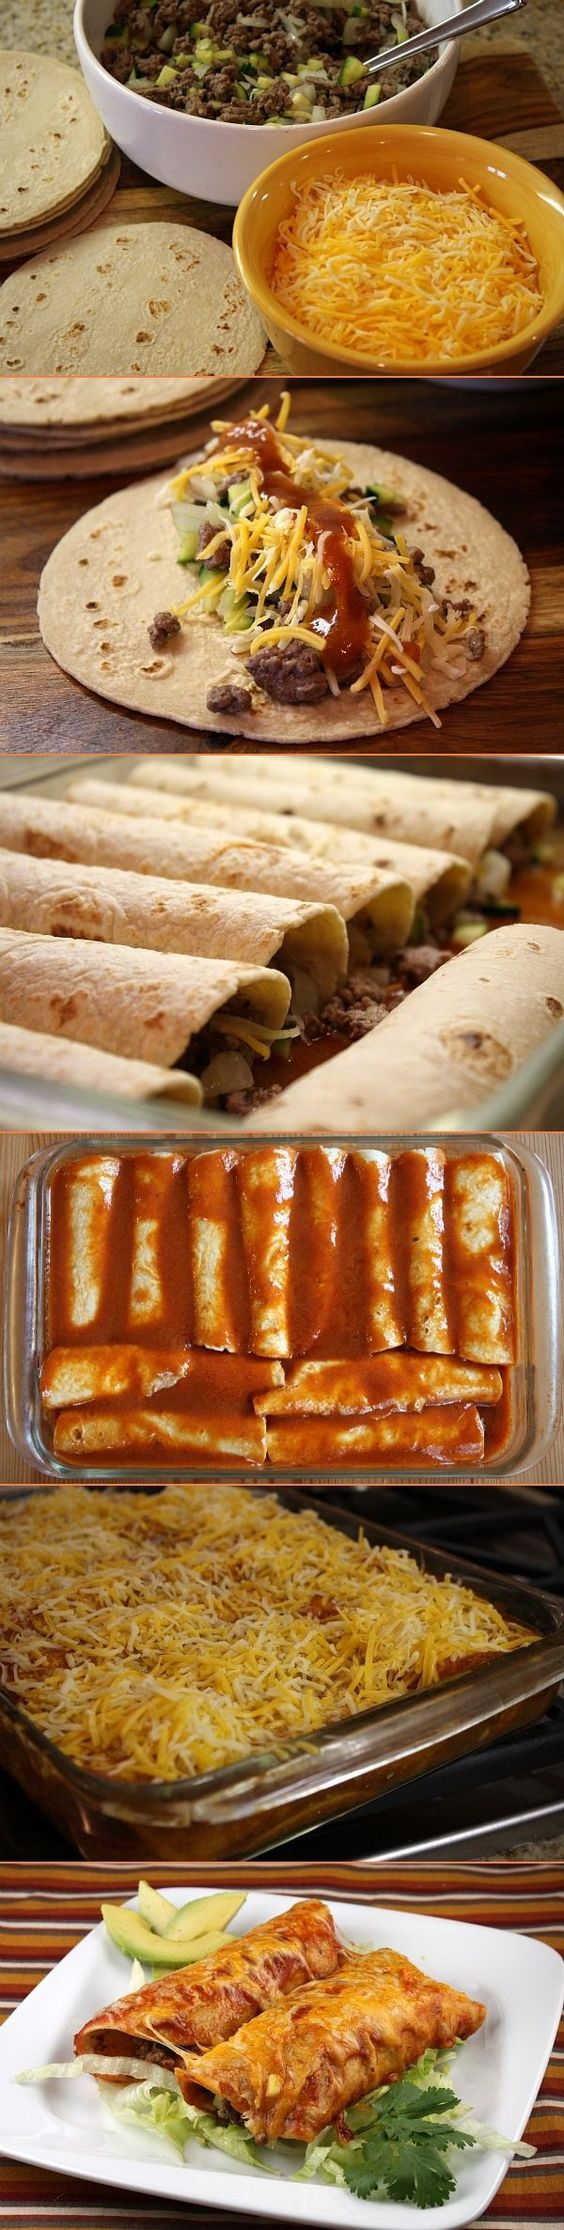 Easy Beef Enchiladas Recipe   Easy beef enchiladas, Sauces and Cheese